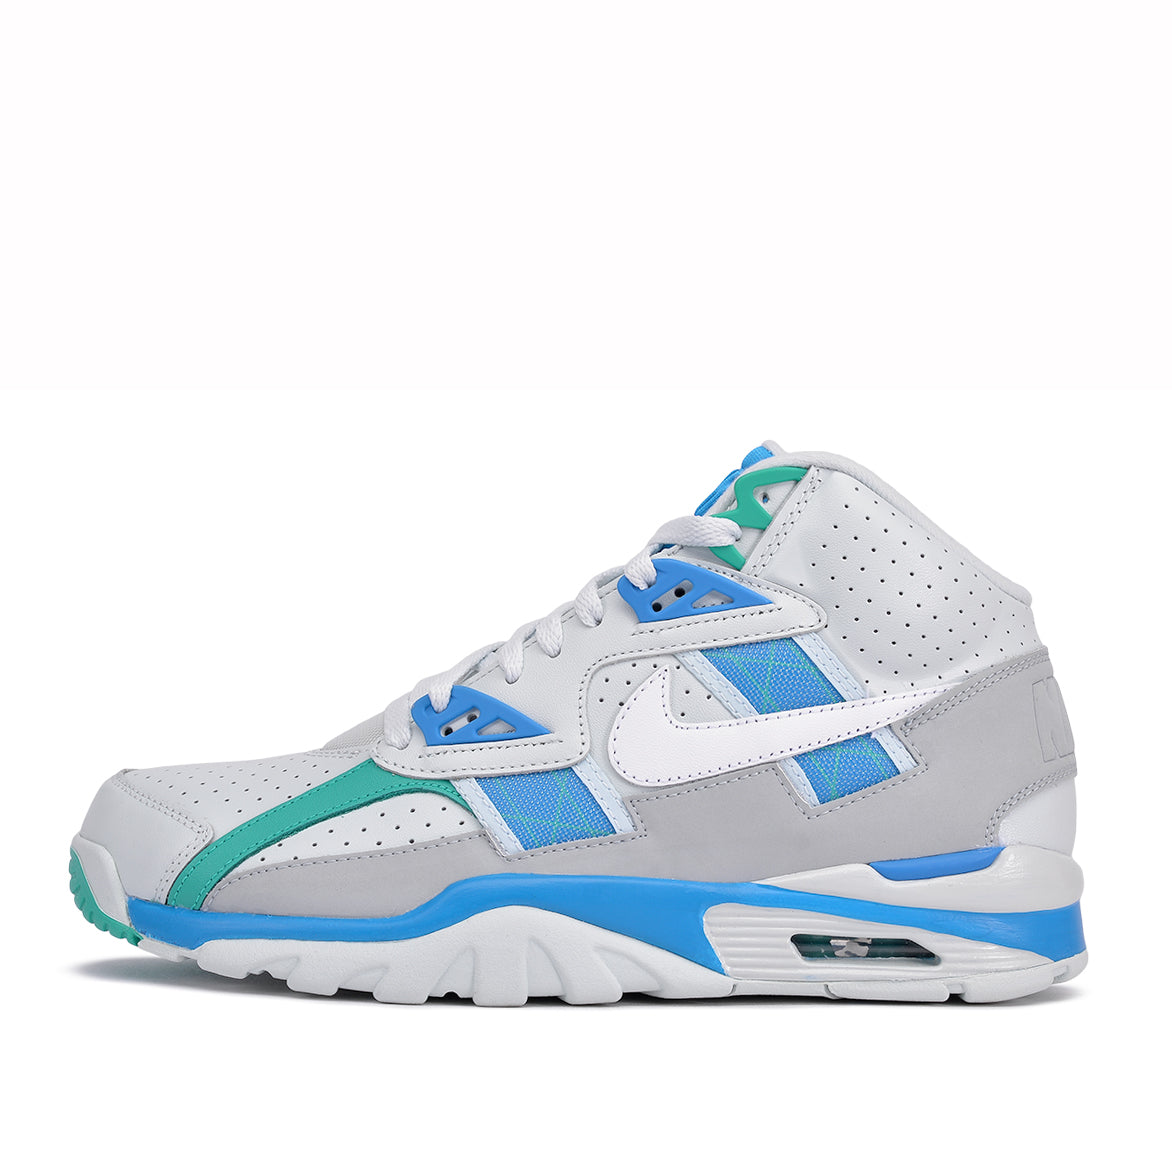 AIR TRAINER SC HIGH - BARELY GREY / WHITE / BLUE ORBIT